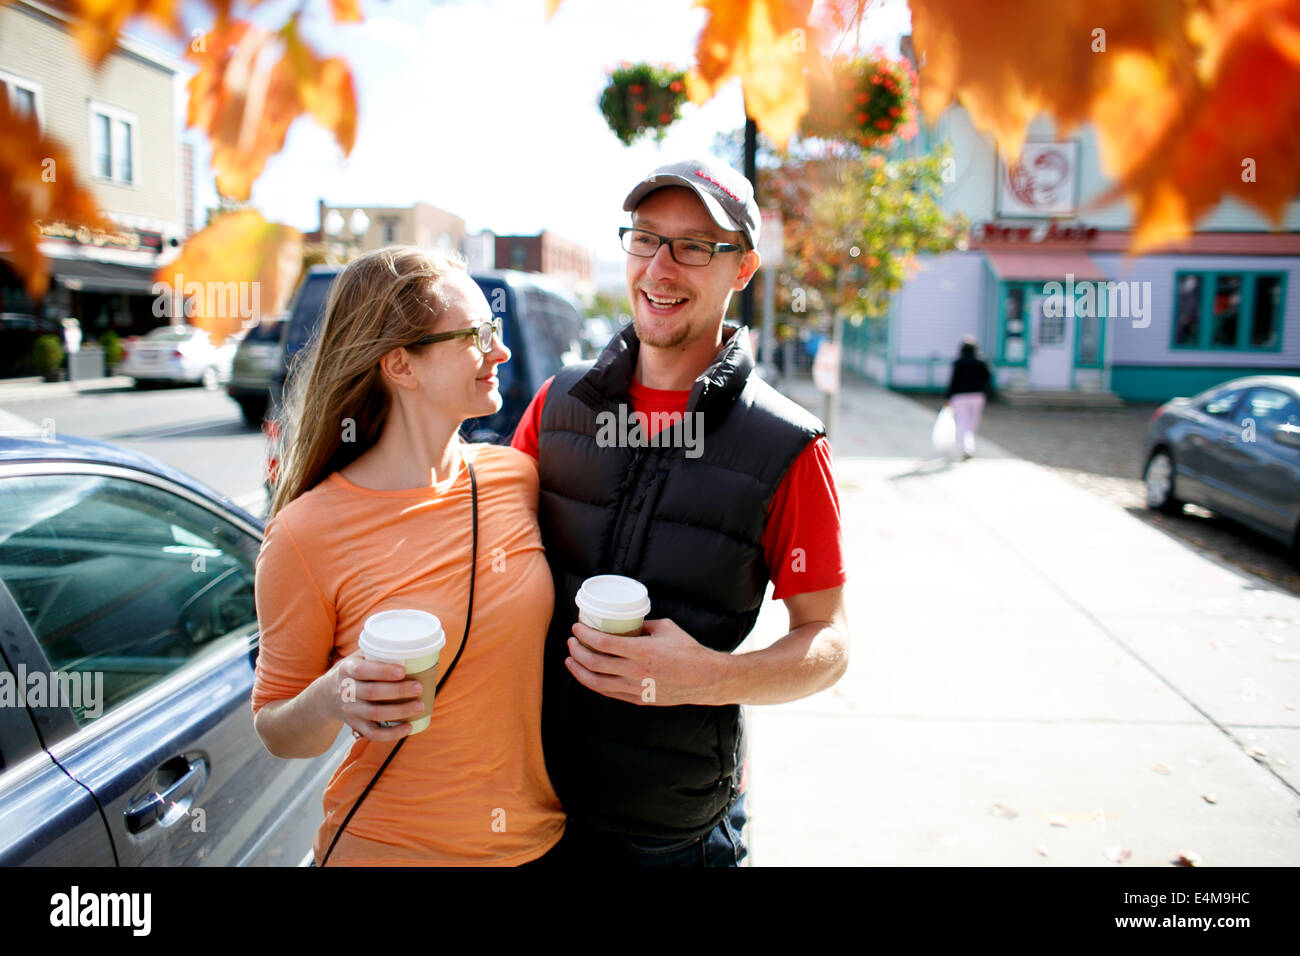 Couple Holding Coffee cups on Sidewalk Photo Stock